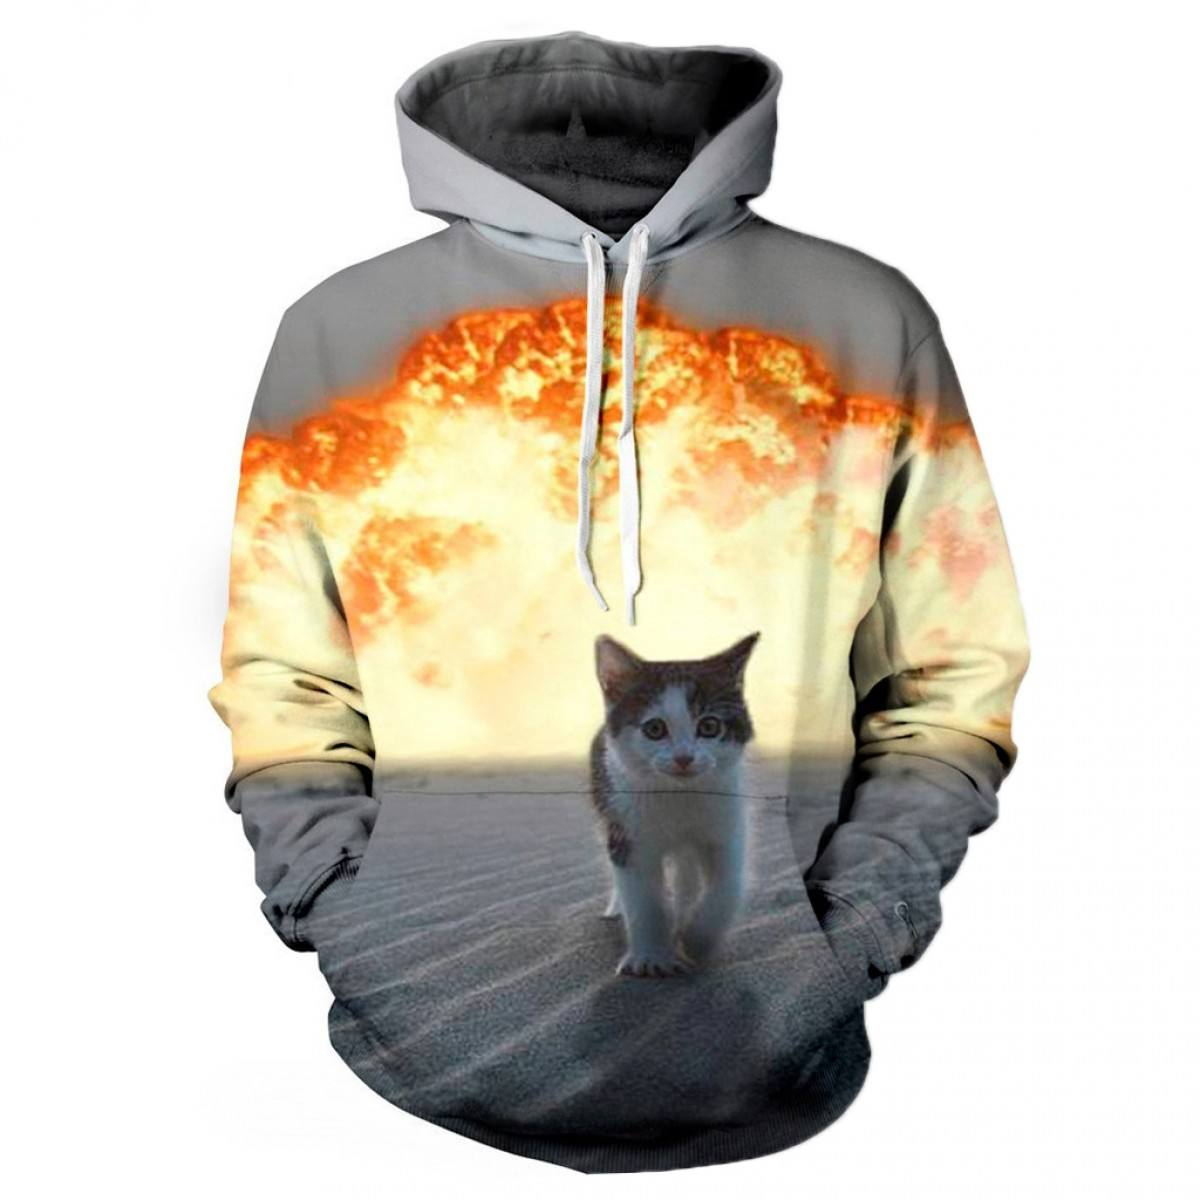 Hooded sweatshirt high fashion pullover mens fitness jacket hoodie custom sublimation hoodie 2020